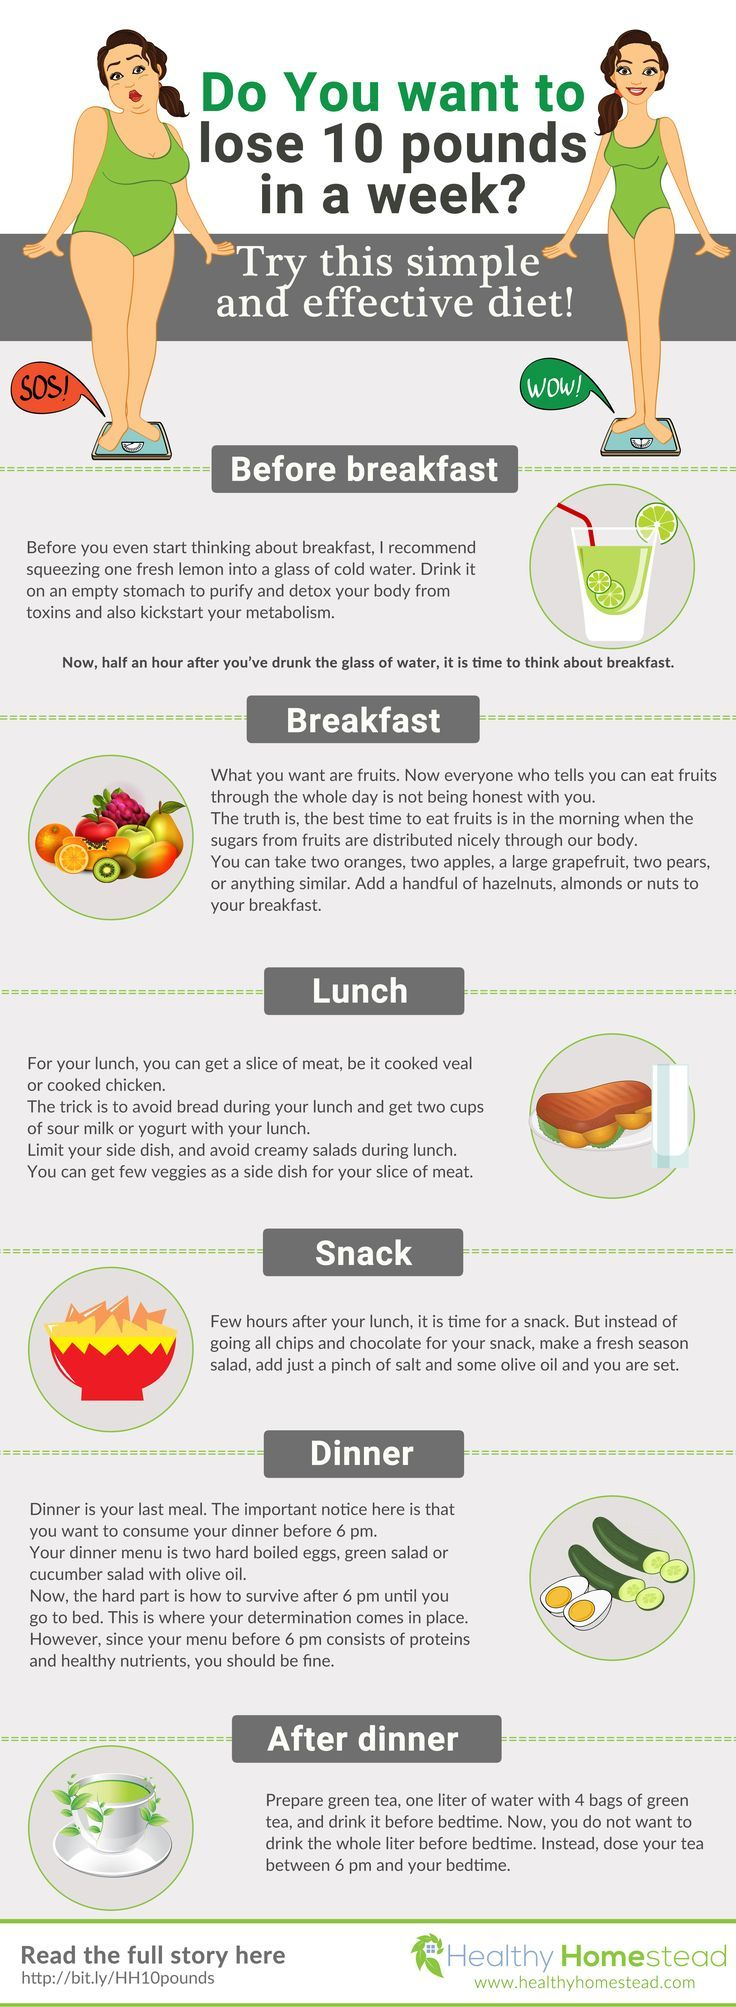 23 best diets images on pinterest healthy meals exercises and 23 best diets images on pinterest healthy meals exercises and healthy eats nvjuhfo Images